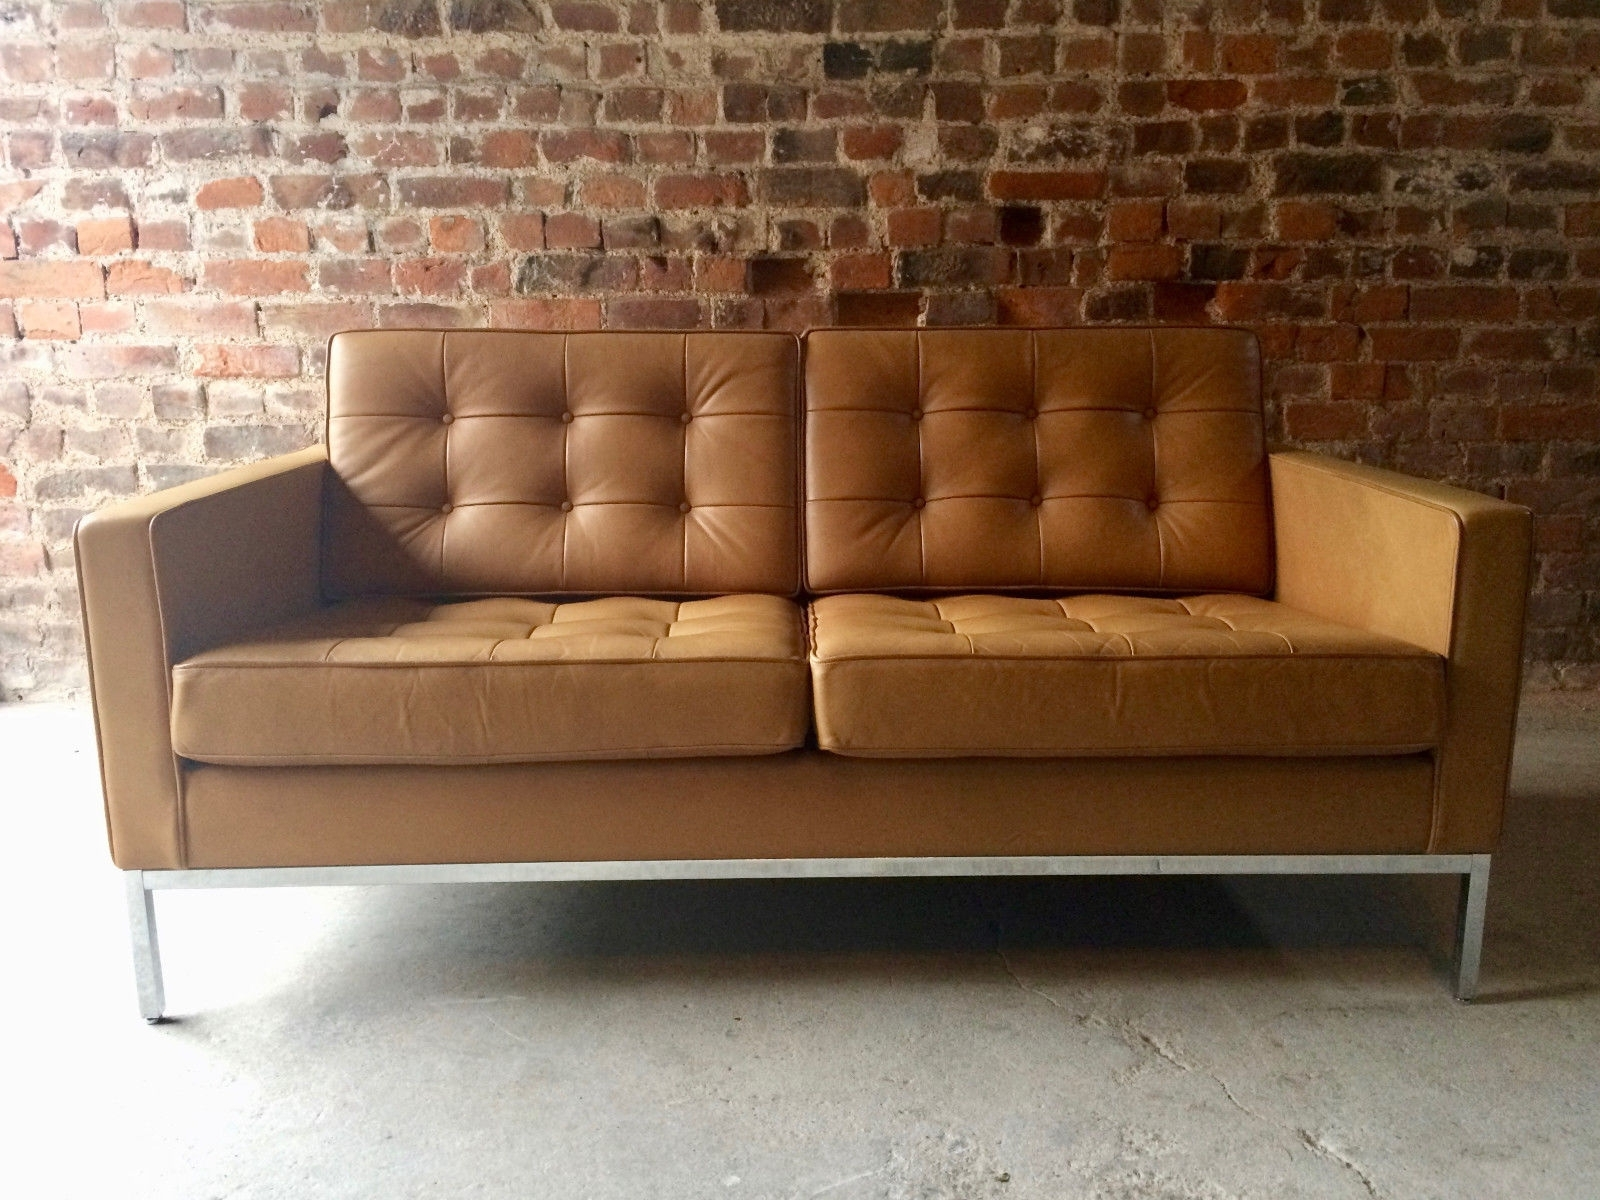 Well Known Florence Knoll Leather Sofas In Vintage 2 Seater Leather Sofaflorence Knoll For Knoll For Sale (View 18 of 20)